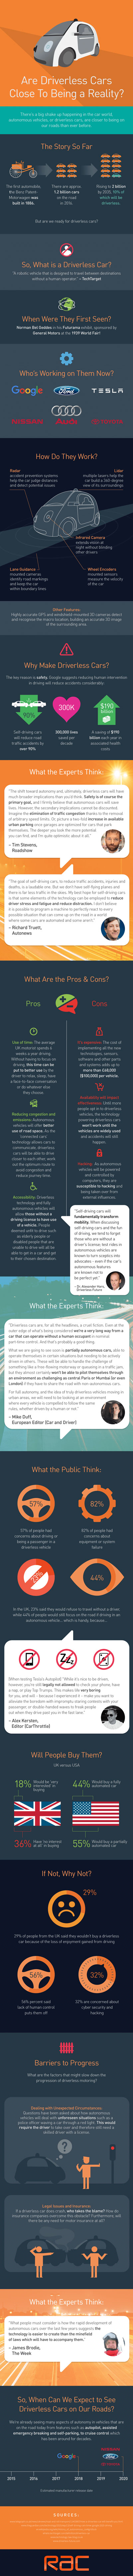 driverless-cars-coming